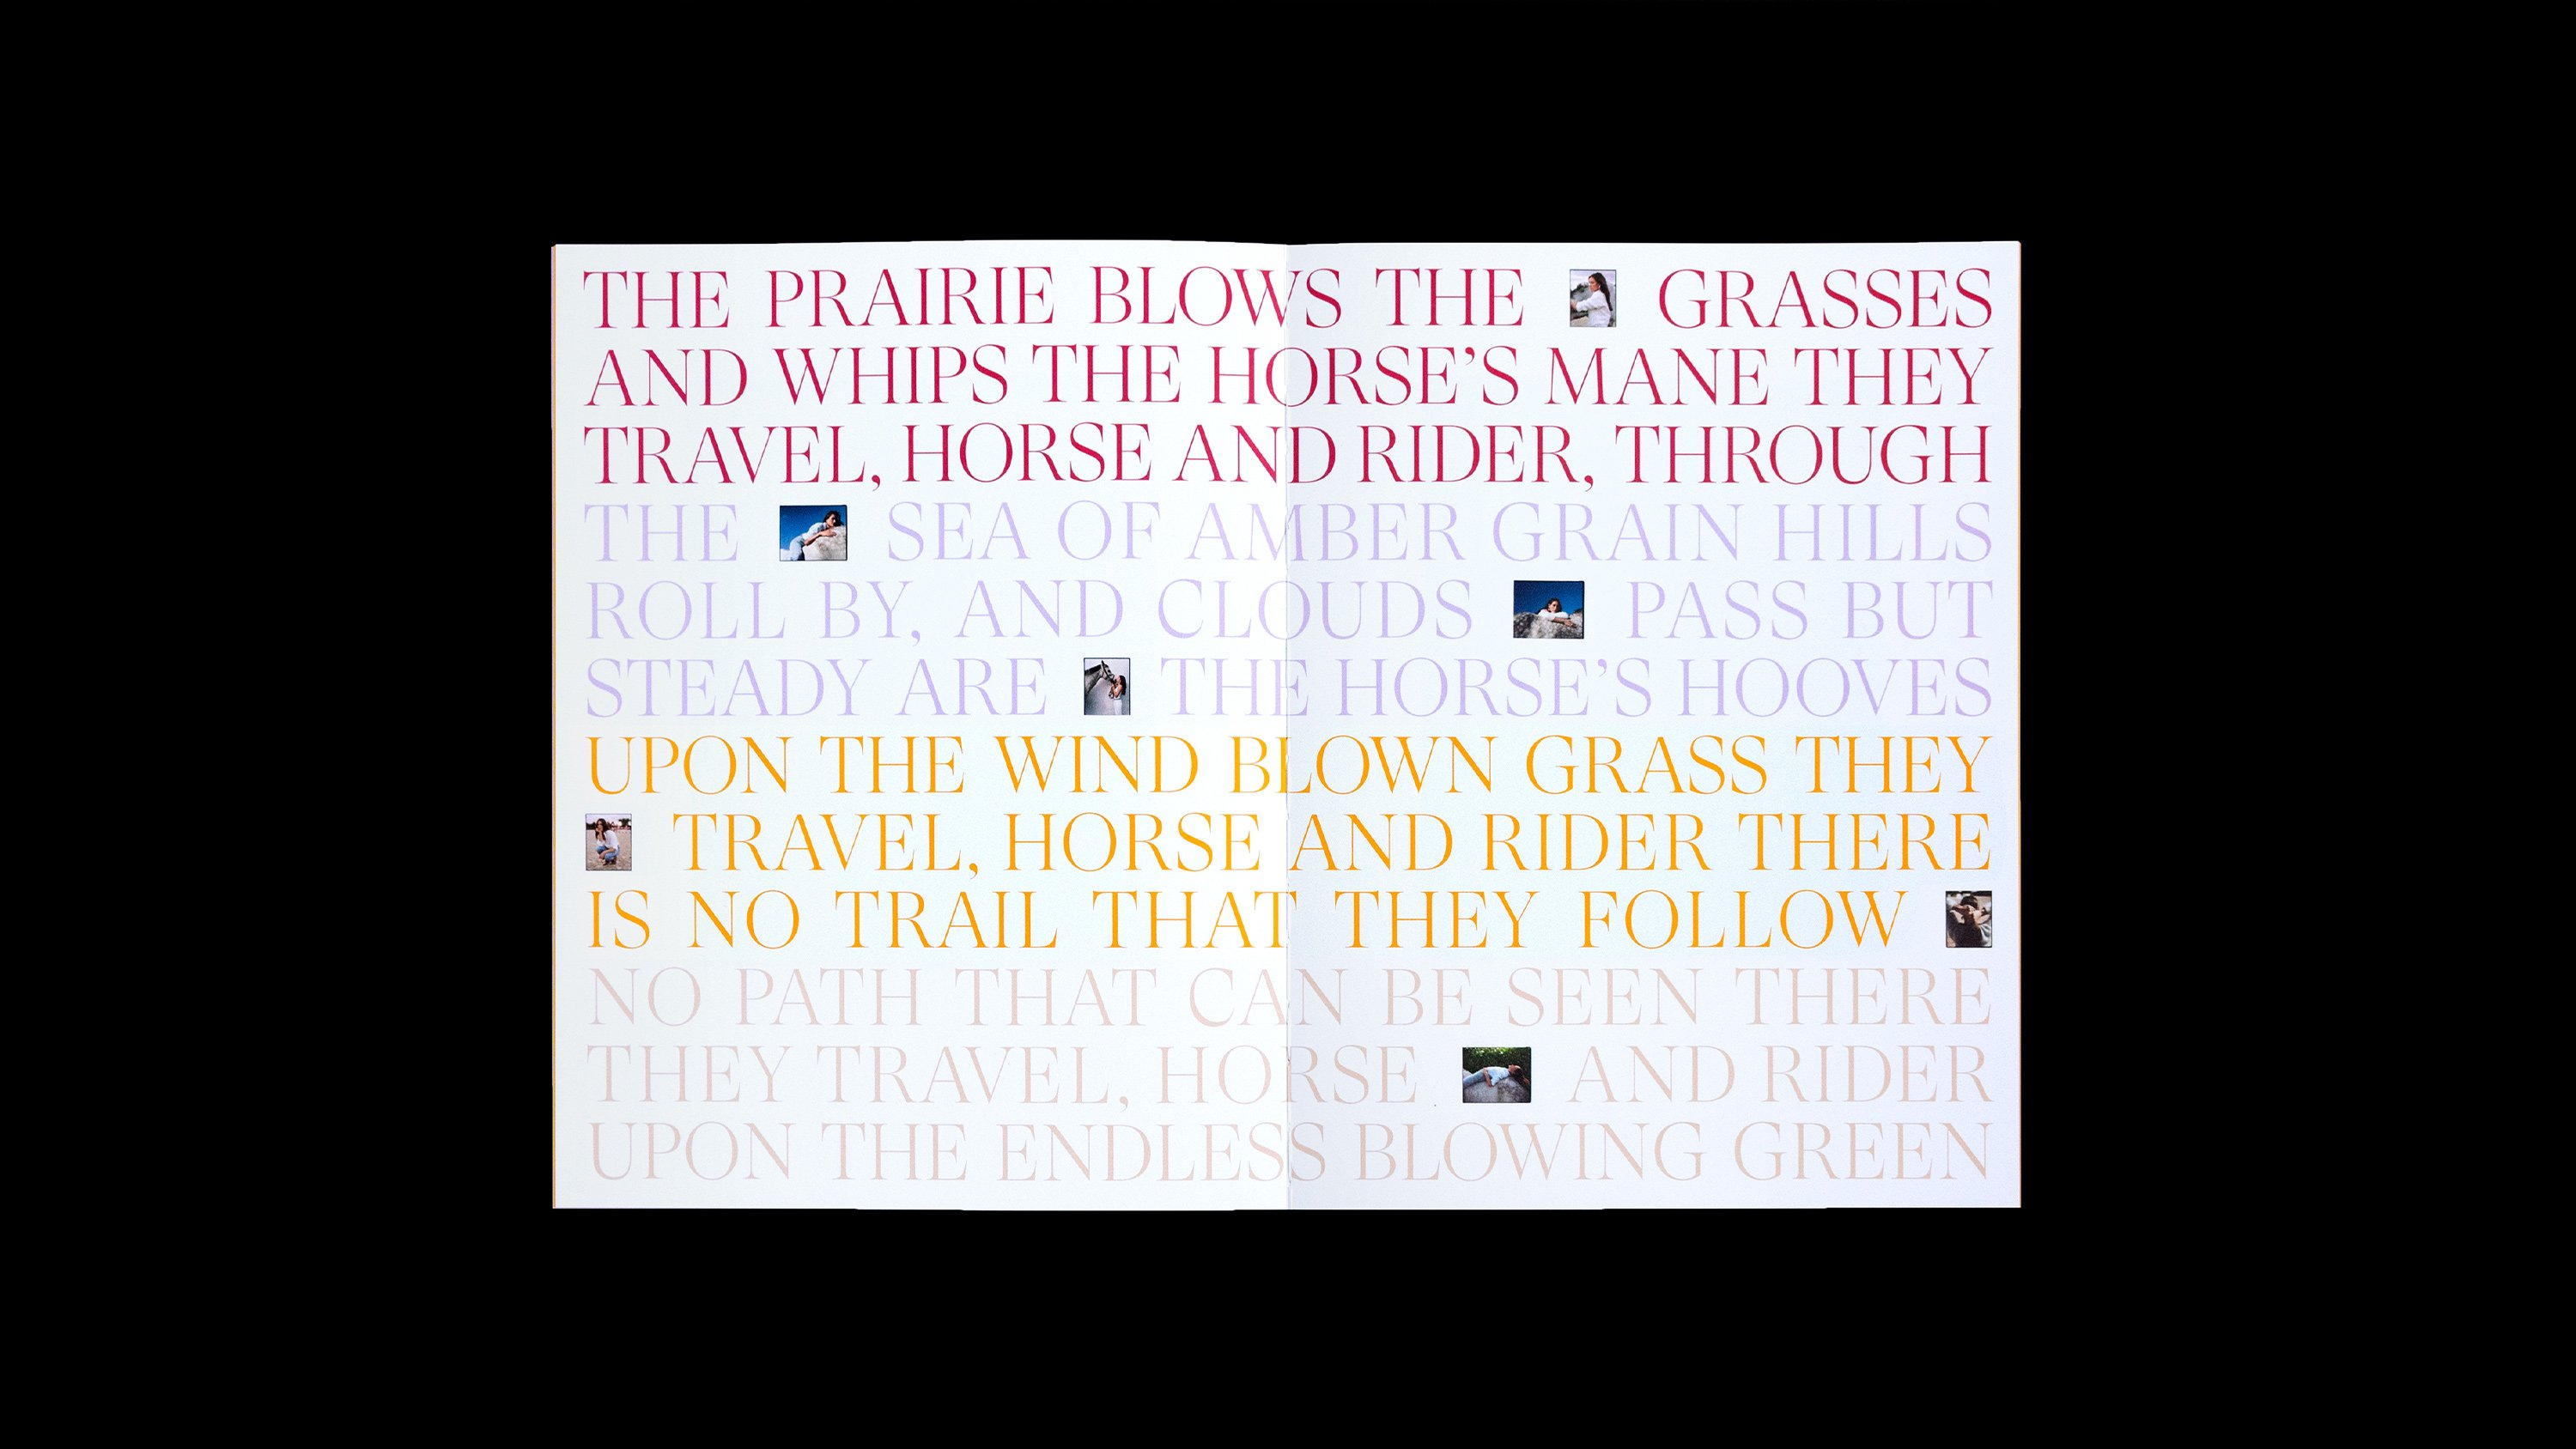 Irene Neuwirth brand book quote: The prairie blows the grasses and whips the horse's mane they travel, horse and rider, through the sea of amber grain hills roll by, and clouds pass but steady are the horse's hooves. Upton the wind blown grass they travel, horse and rider there is no trail that they follow. No path that can be seen there they travel, horse and rider upon the endless blowing green. Art direction and print design by RoAndCo